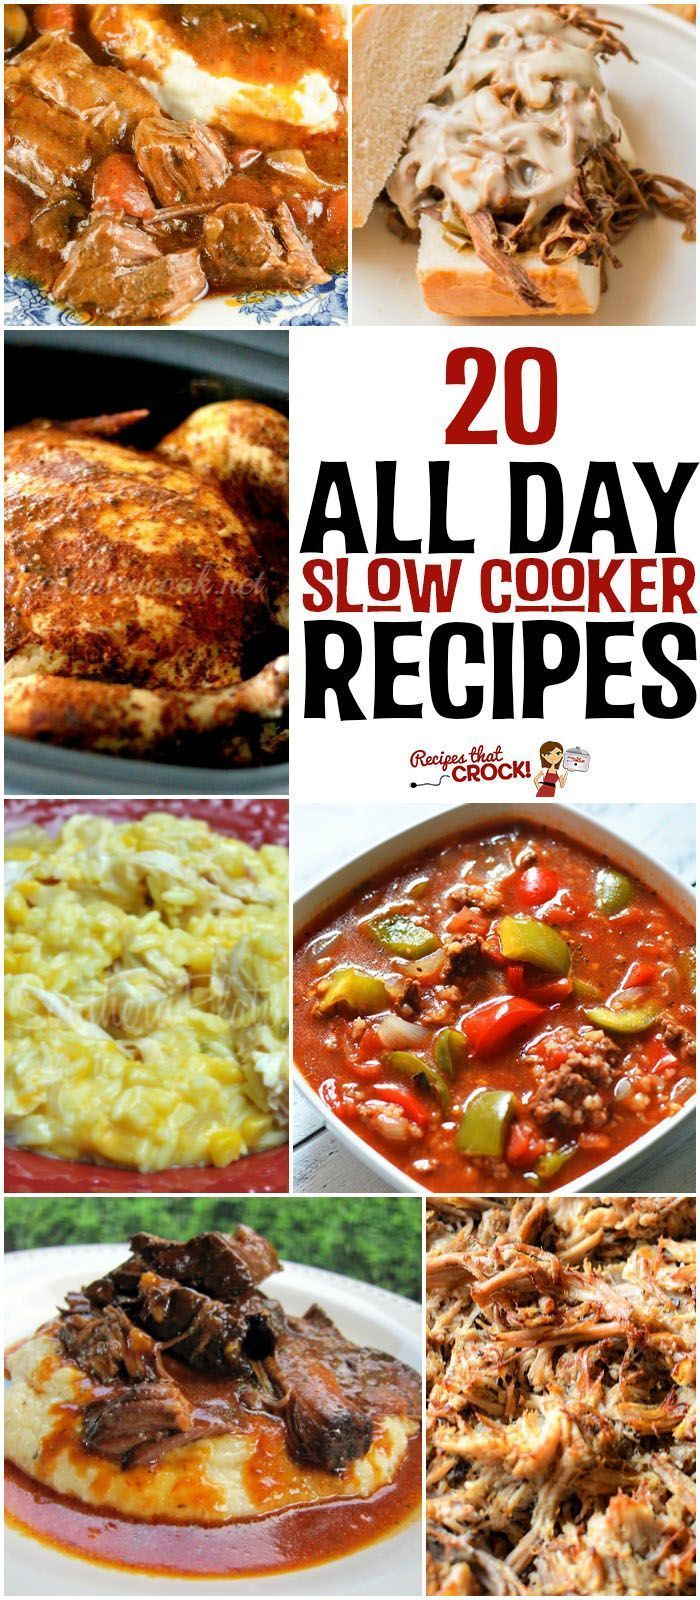 20 All Day Slow Cooker Recipes: Do you wish you had more ALL DAY slow cooker recipes that you fix in the morning and come home to a perfectly cooked meal? We have pulled together our favorite long cooking crock pot recipes and asked the best cooks we know